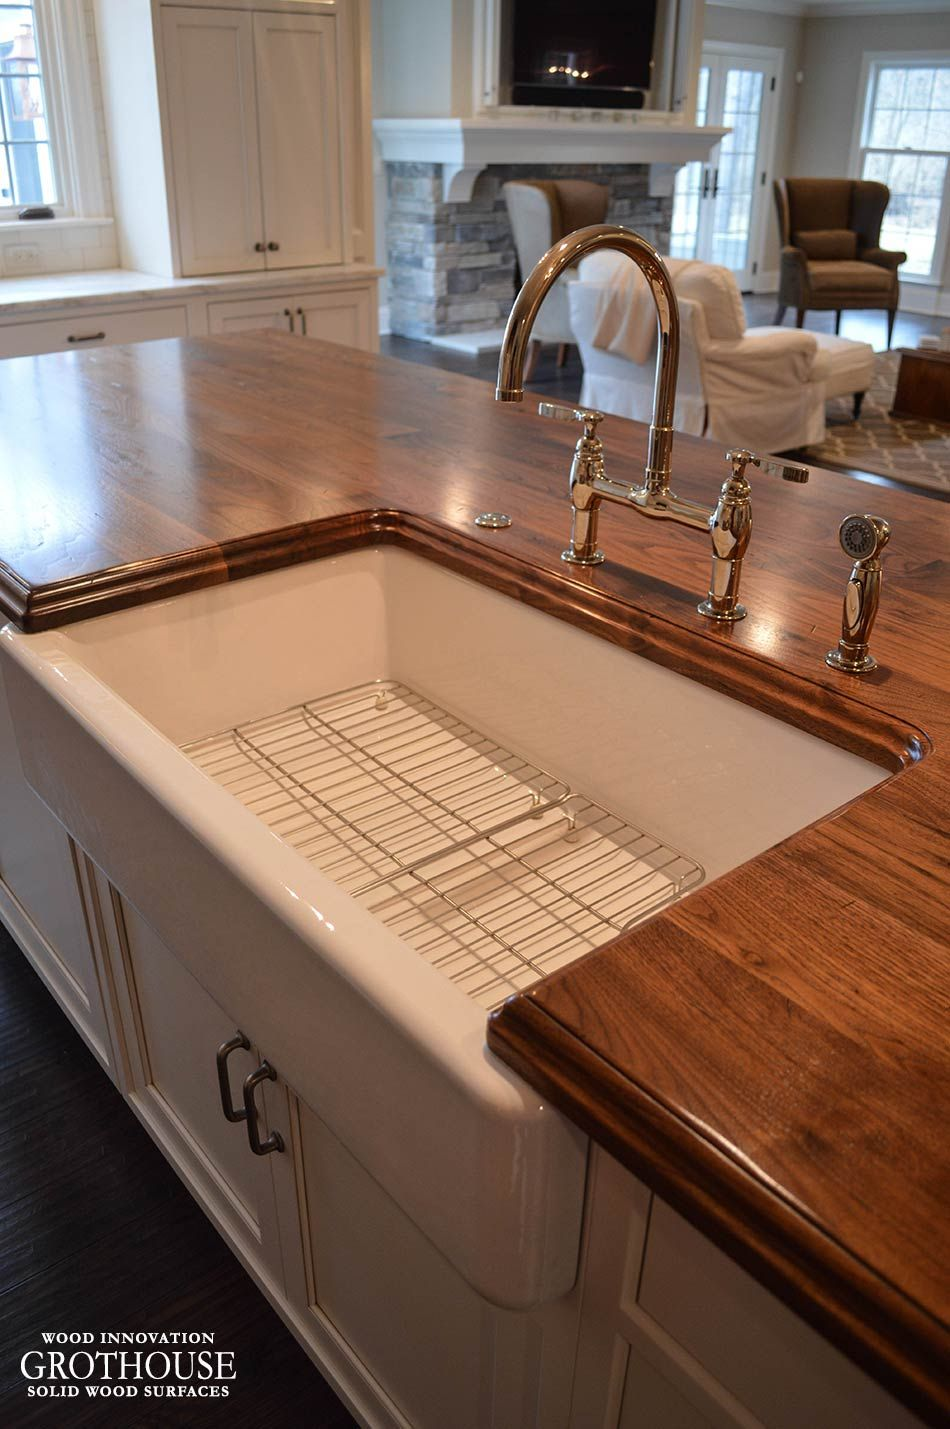 Walnut Wood Counter with Farmhouse Sink https://www.glumber.com ...